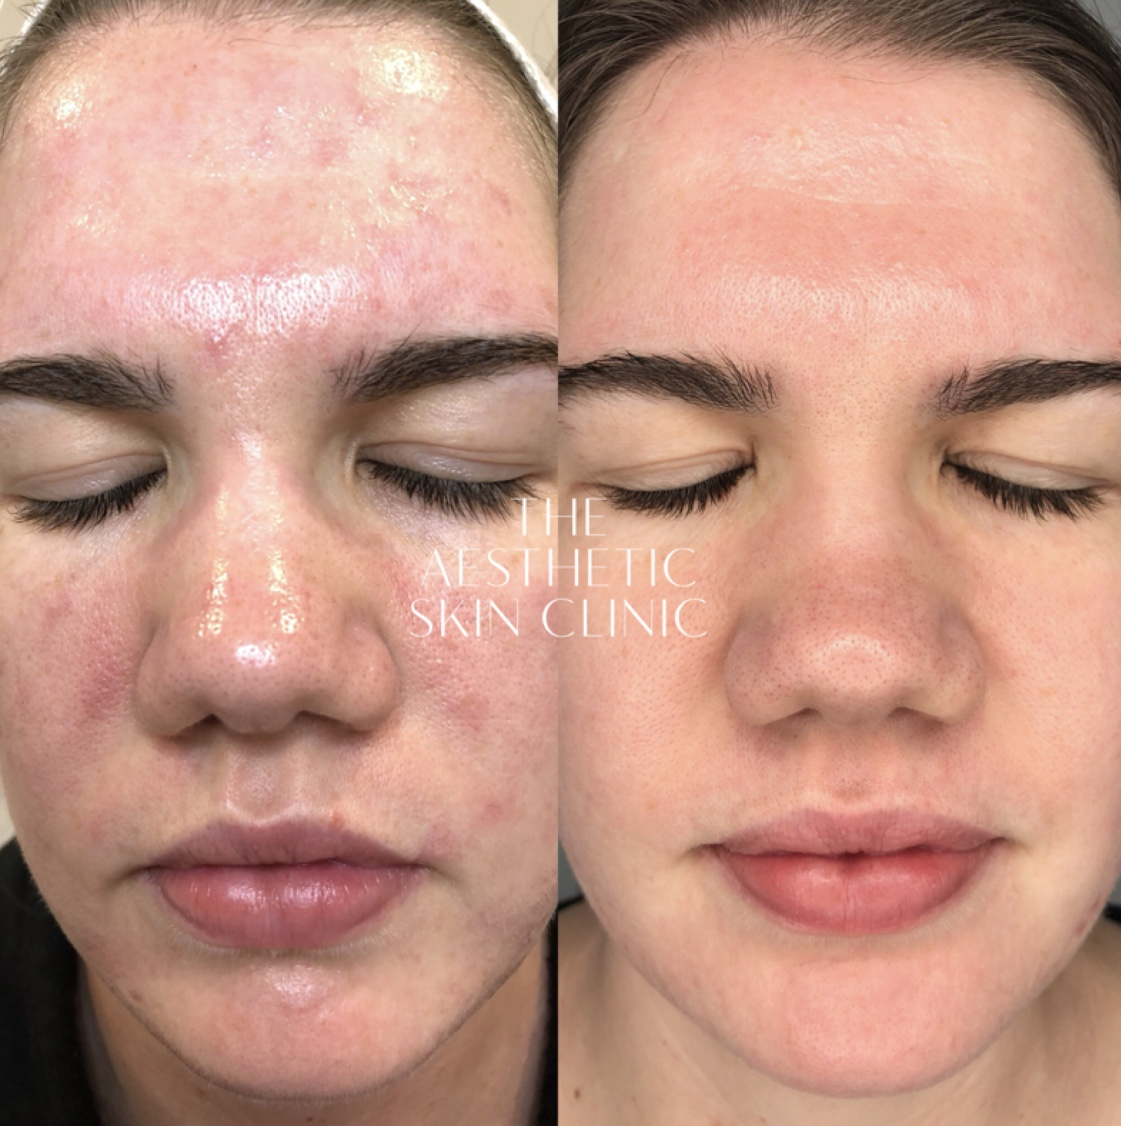 2x DermaSweep MD treatments with a Full Home Care Prescription